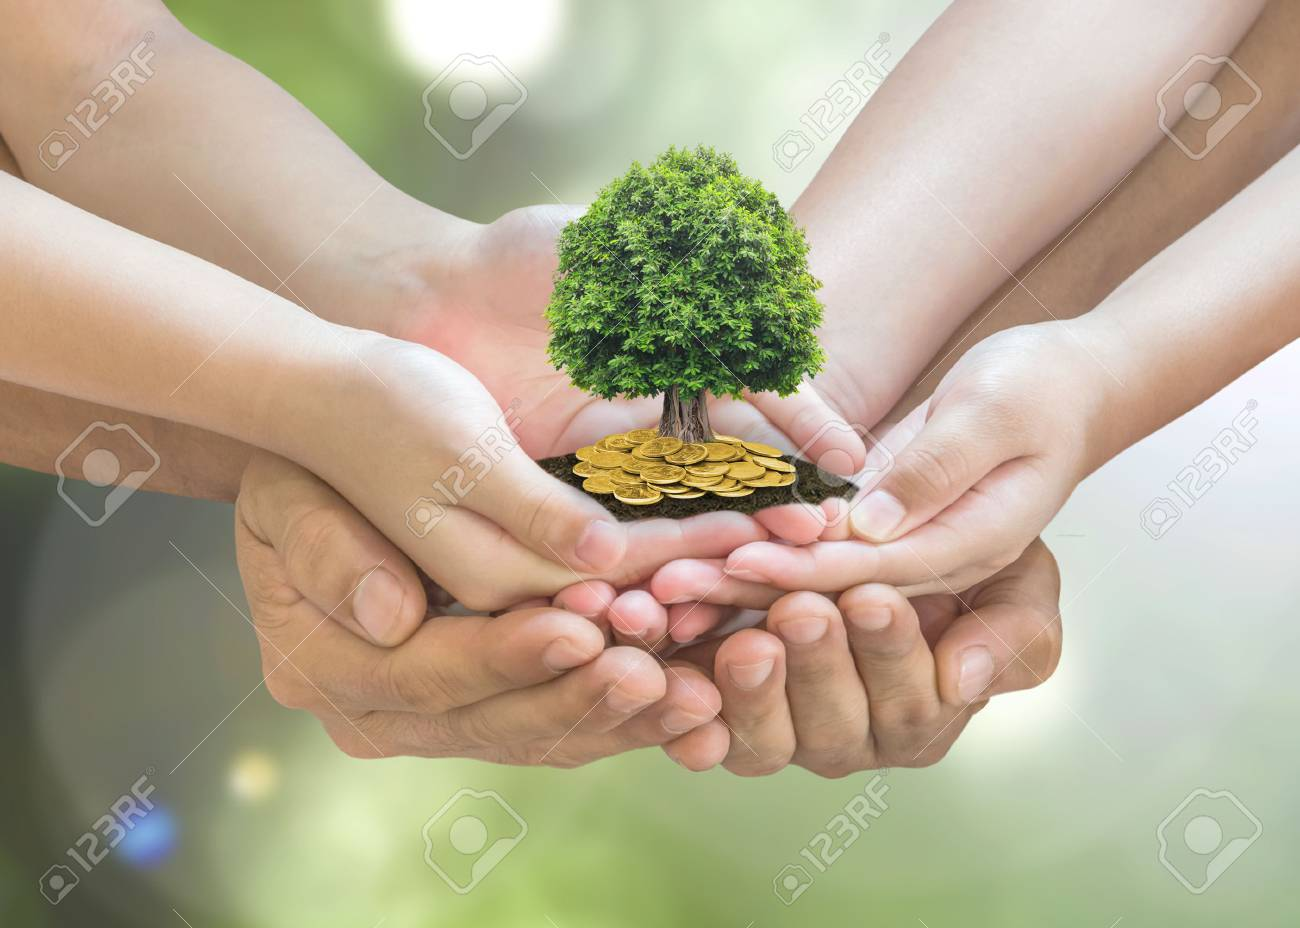 Retirement planning and family investment concept with wealthy tree growing on parent -children's hands - 112436559